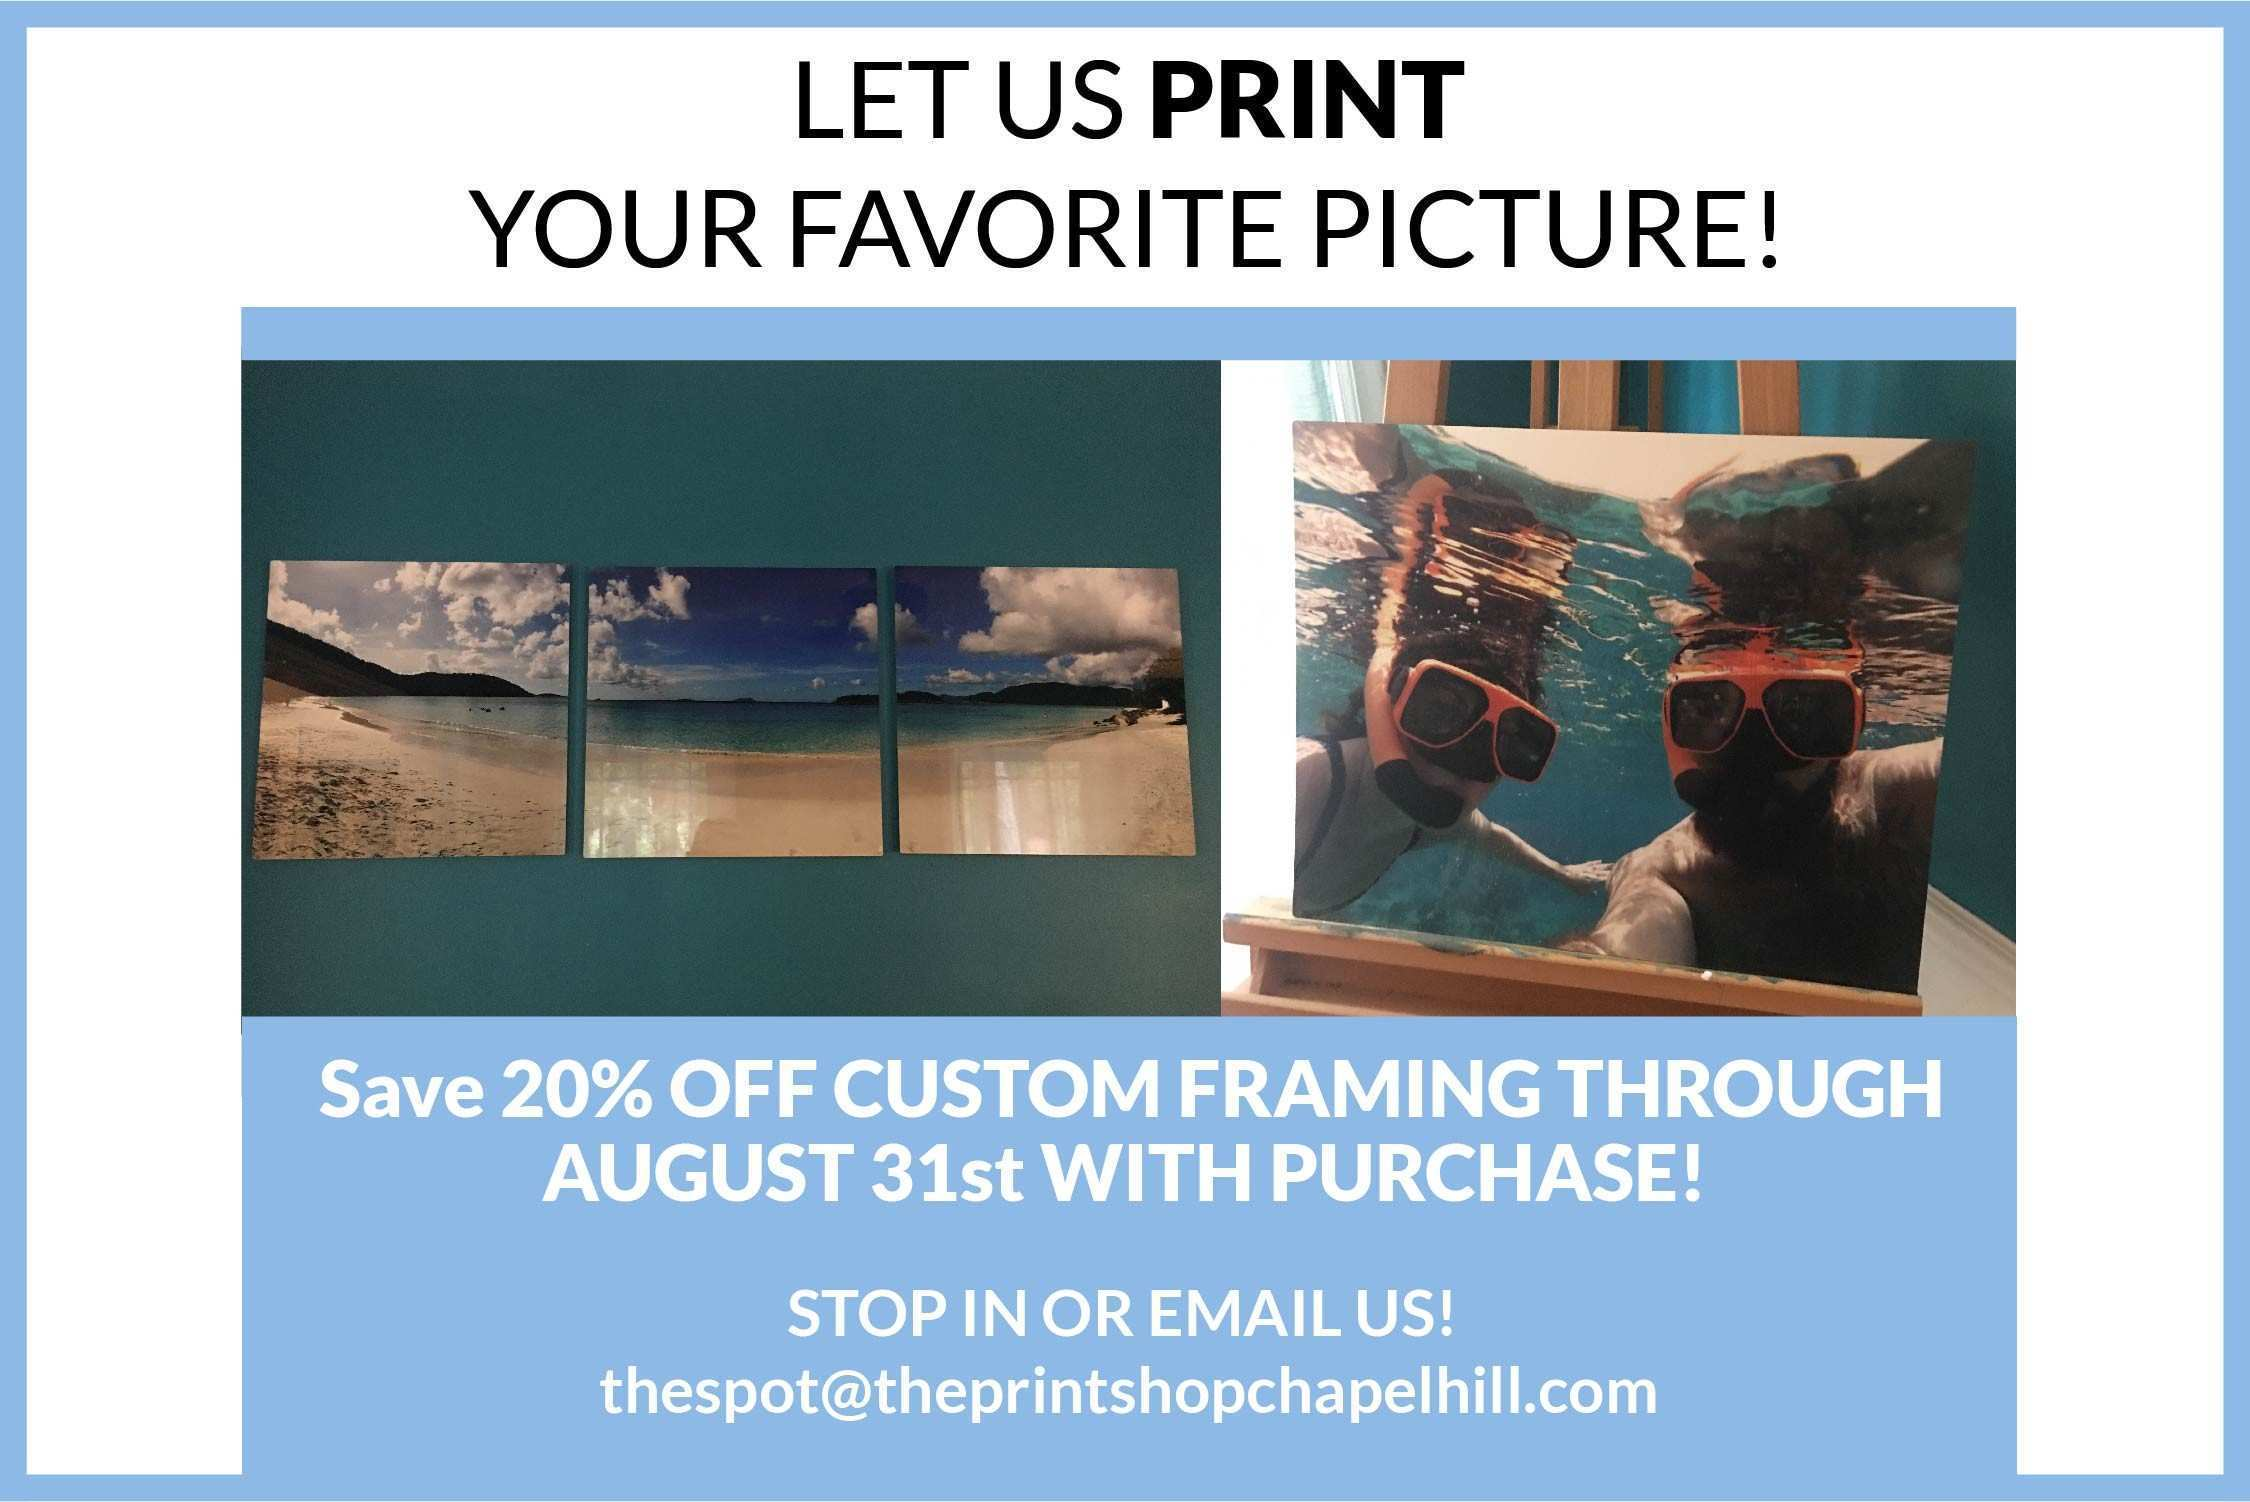 The Frame & Print Shop – The Triangle s Spot for Prints Custom